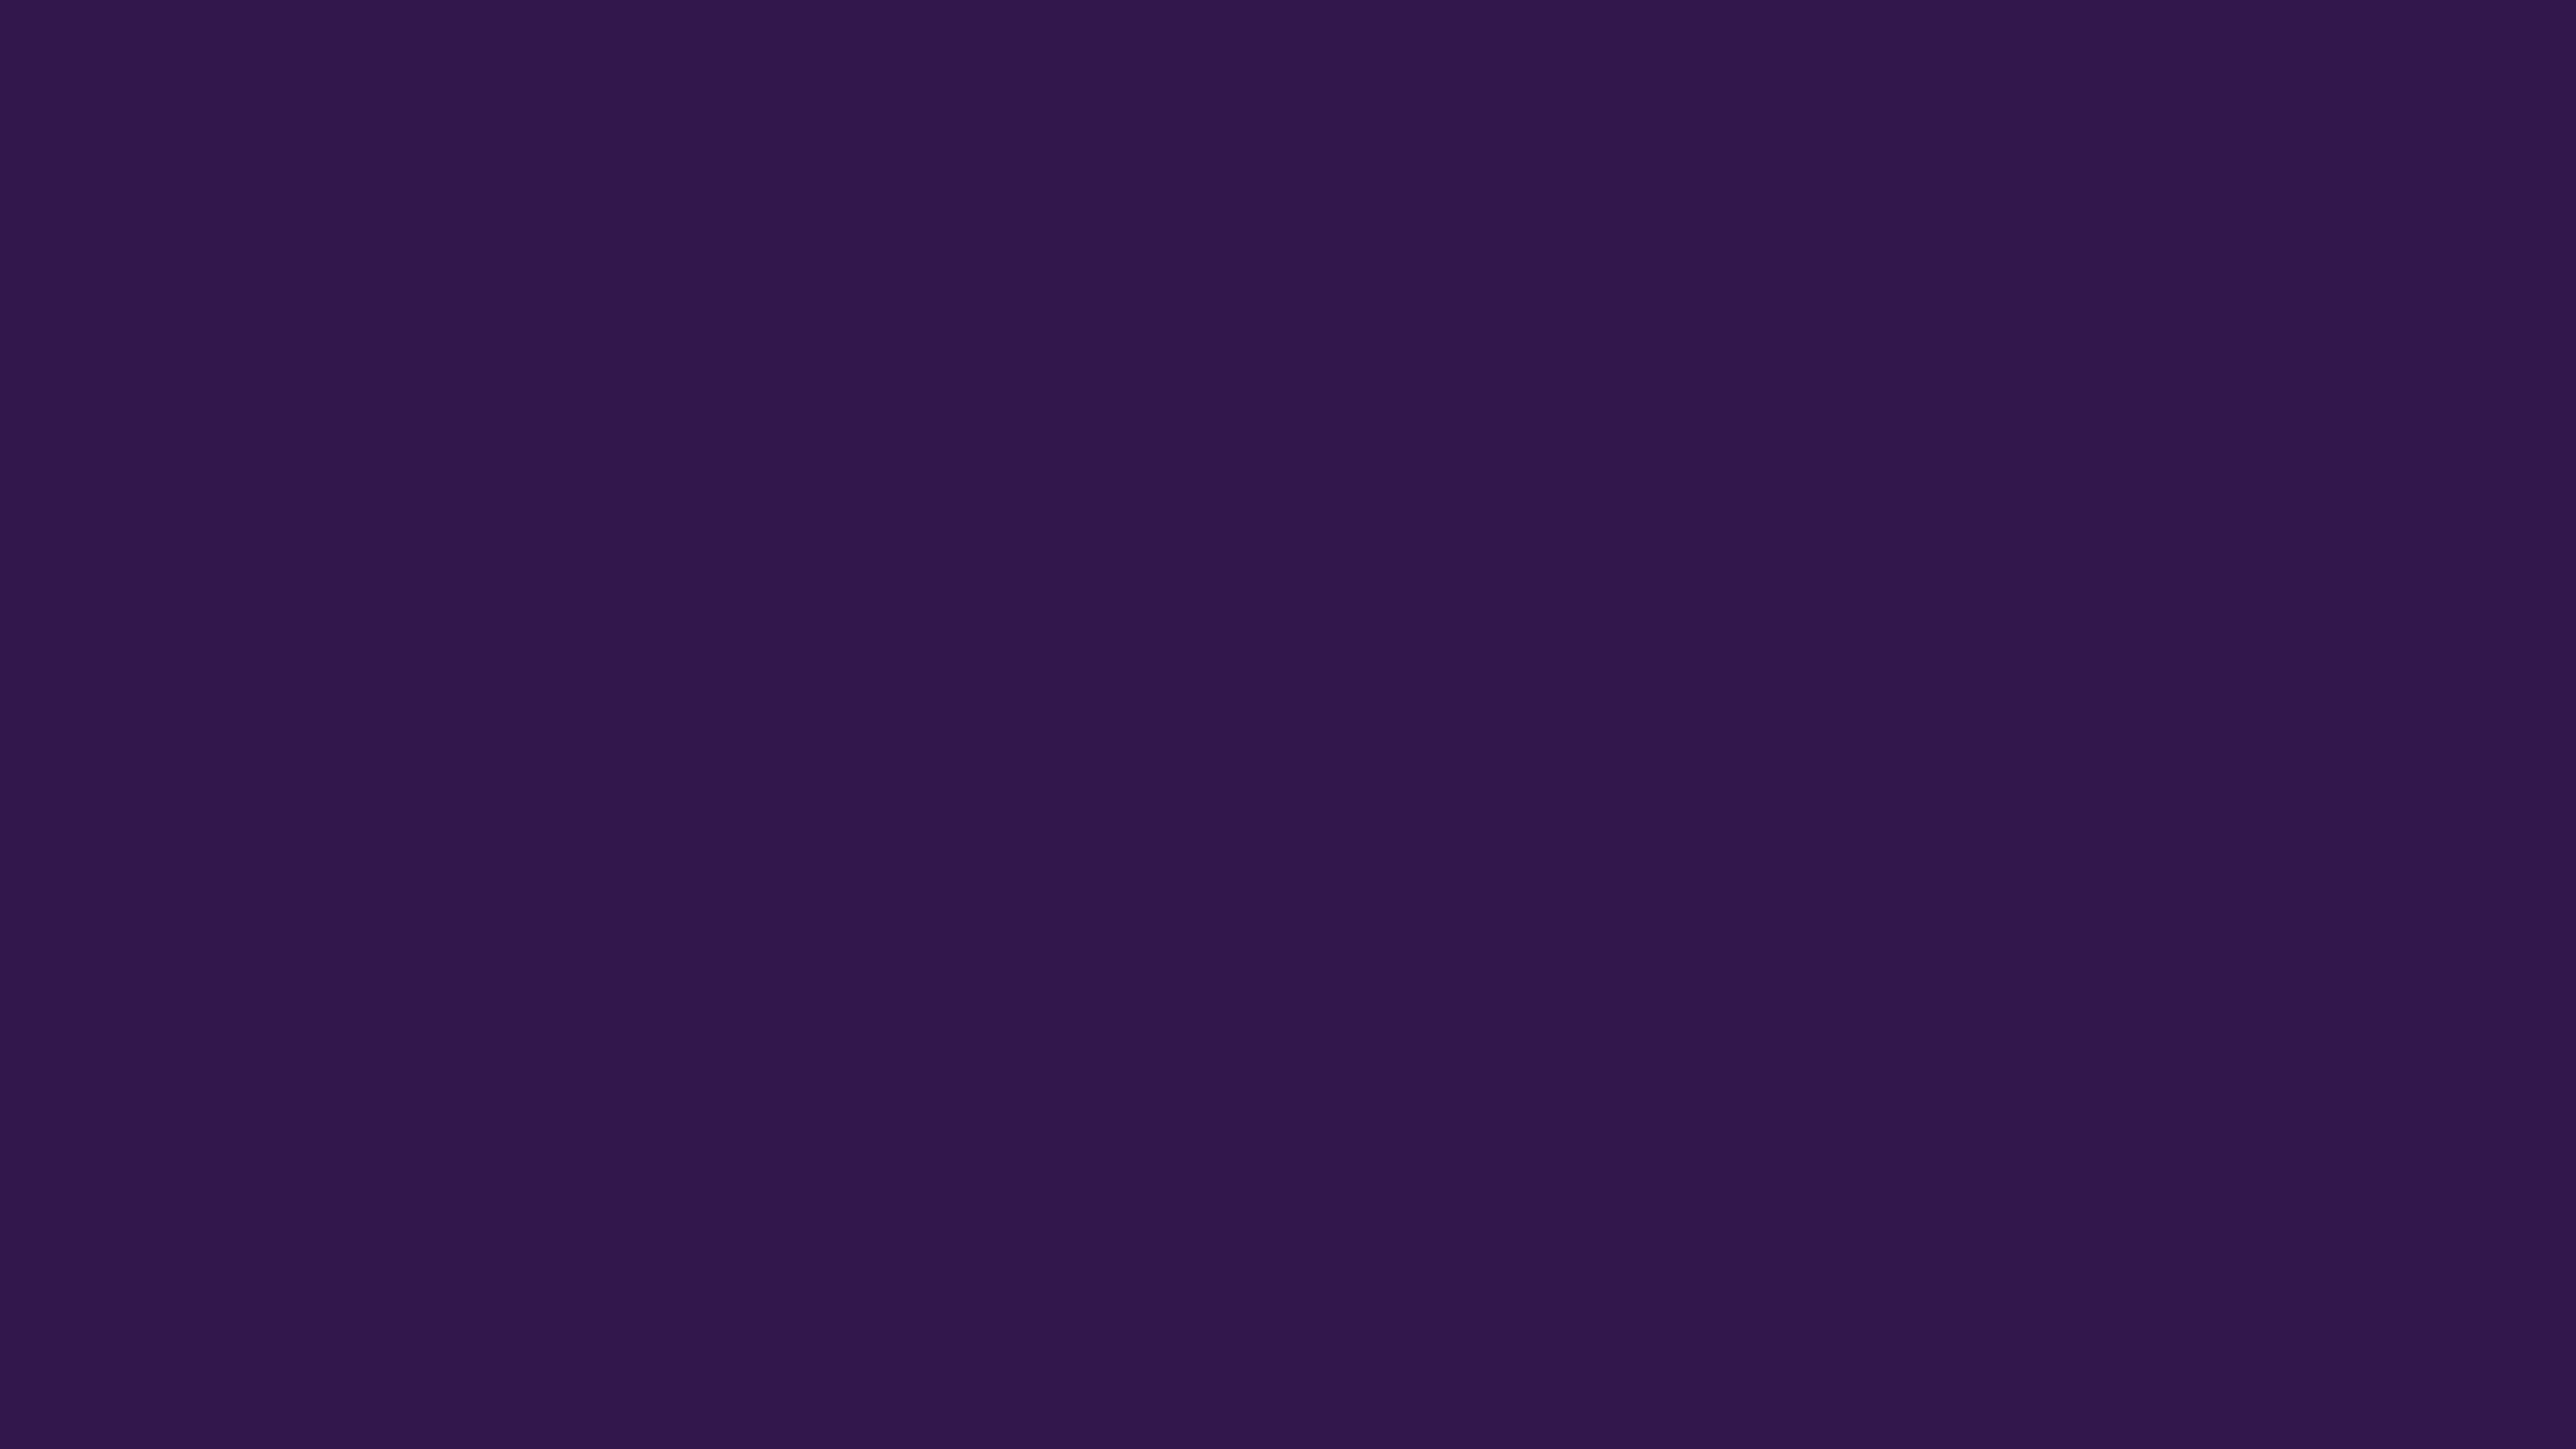 7680x4320 Russian Violet Solid Color Background